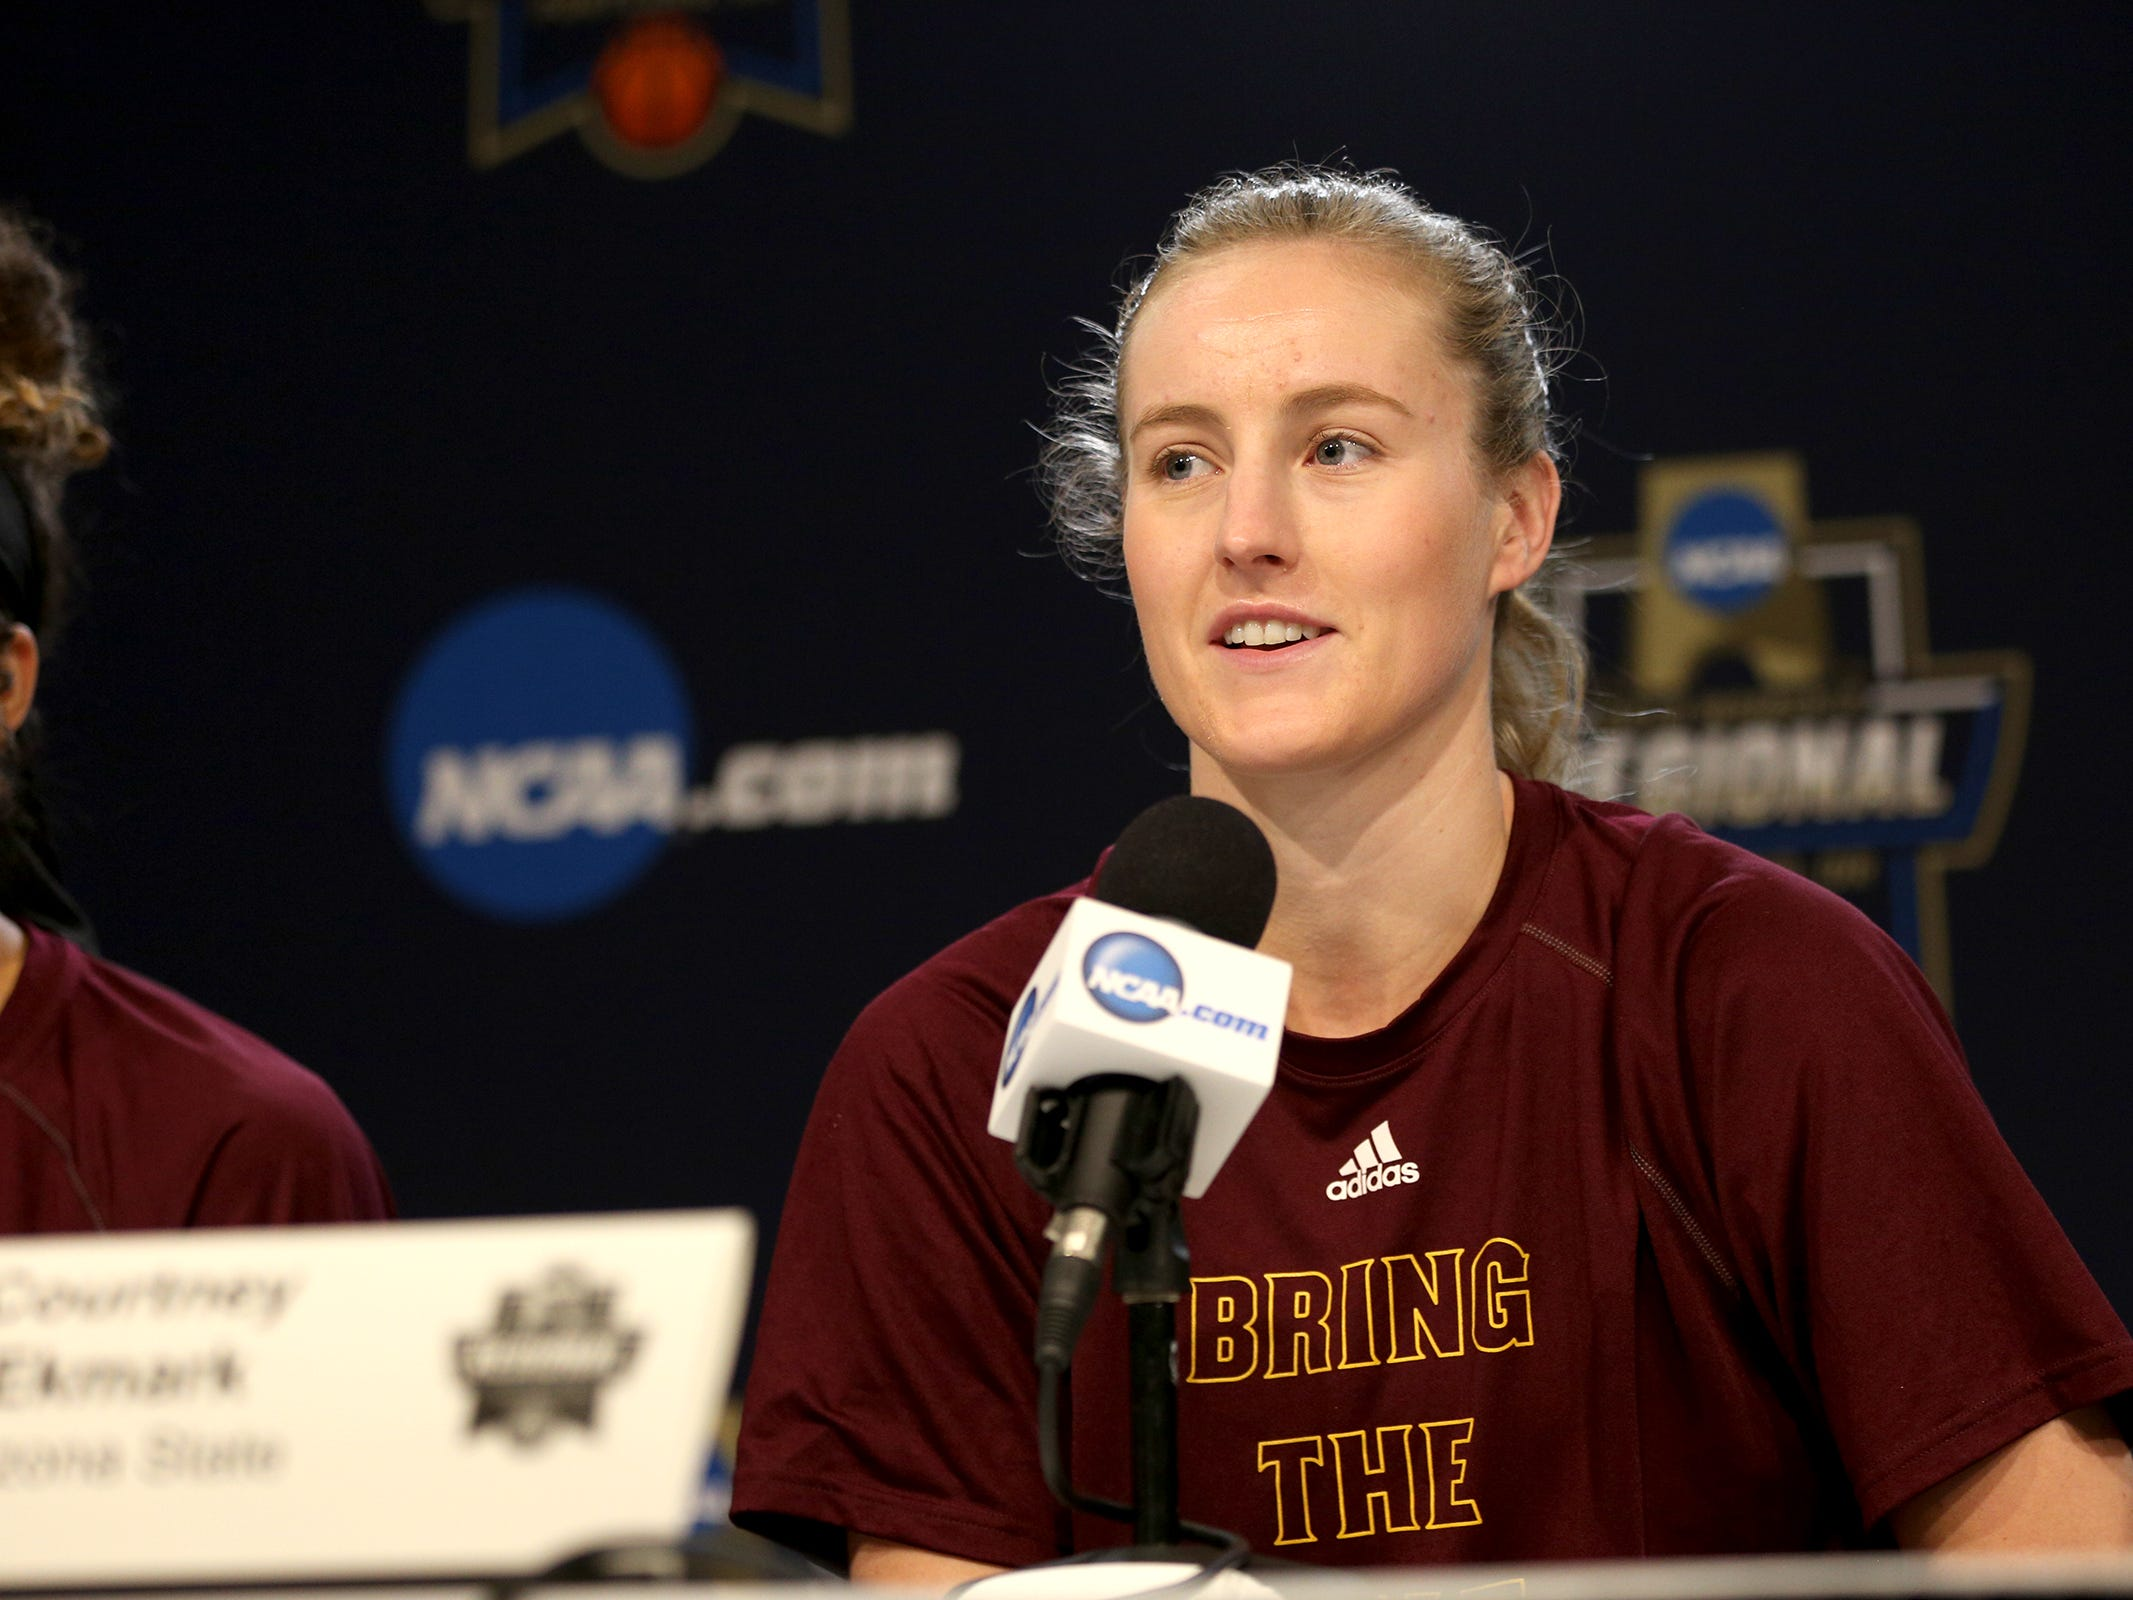 Arizona State University guard Courtney Ekmark answers questions during a press conference prior to the NCAA Women's Regional at the Moda Center in Portland on March 28, 2019.